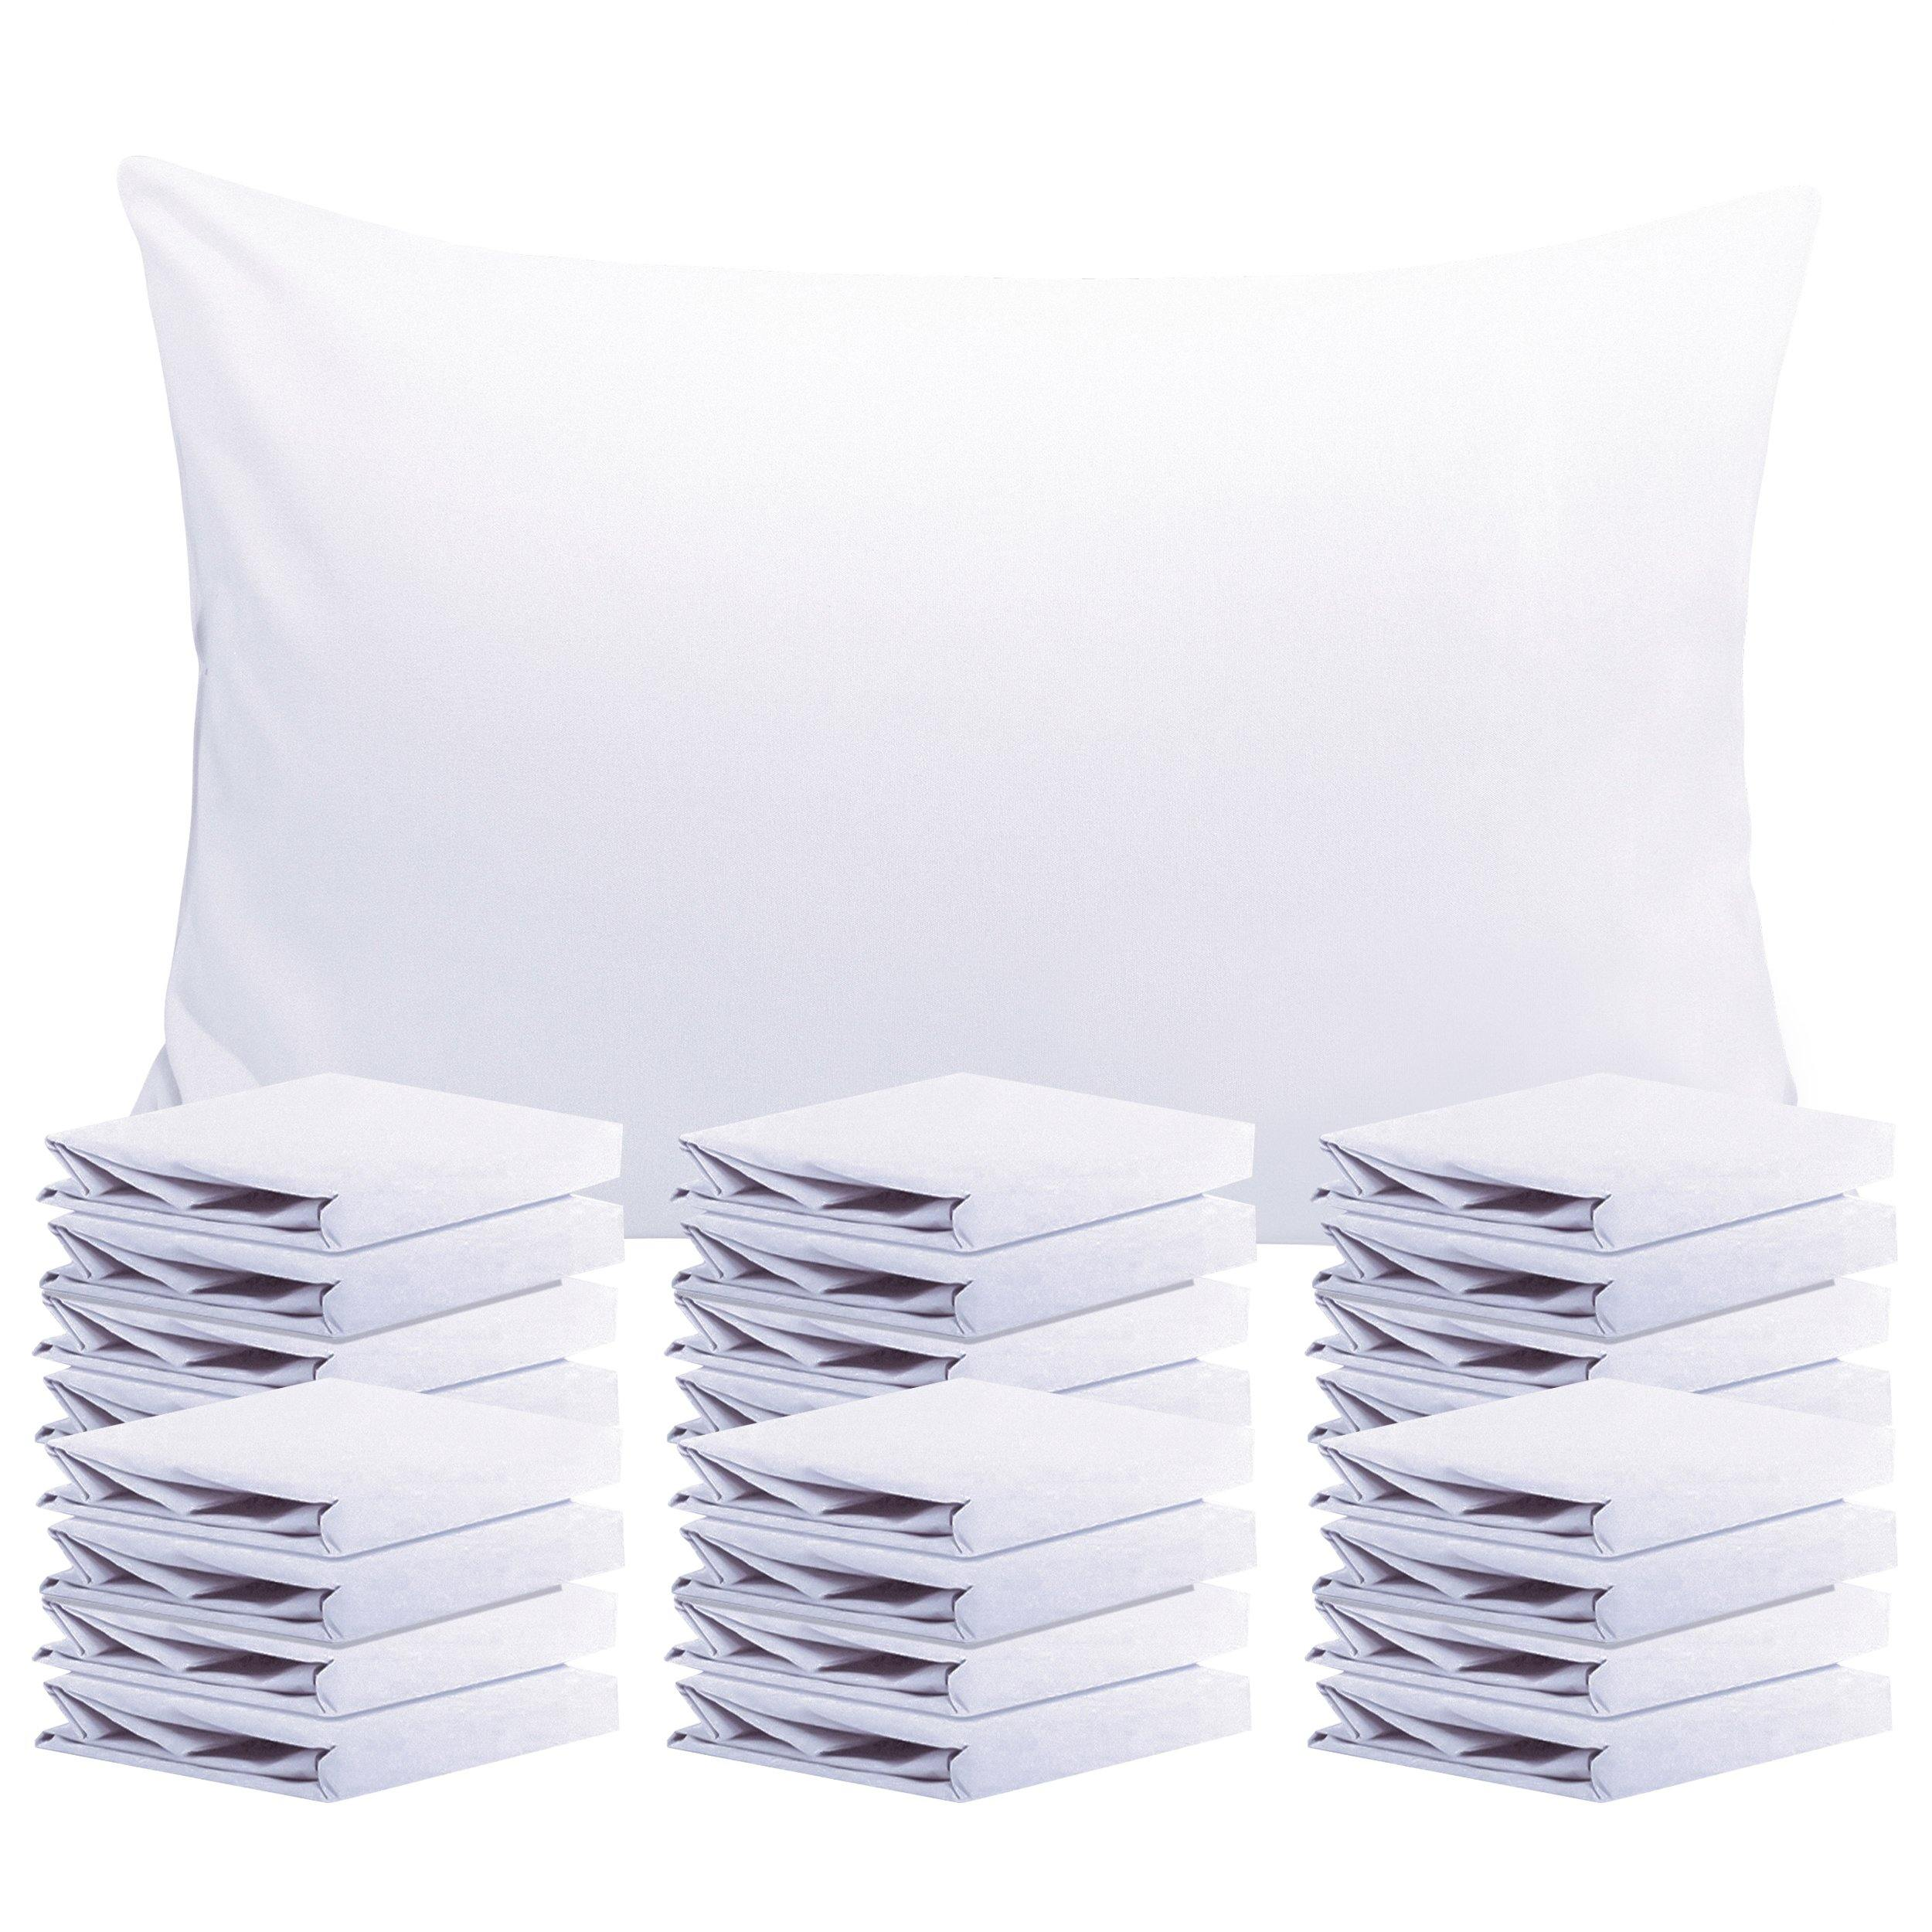 NTBAY 24 Pack Microfiber Queen Pillowcases, Soft and Wrinkle Resistant with Envelope Closure Bedding Pillow Case Set, 20 x 30 Inches - NTBAY